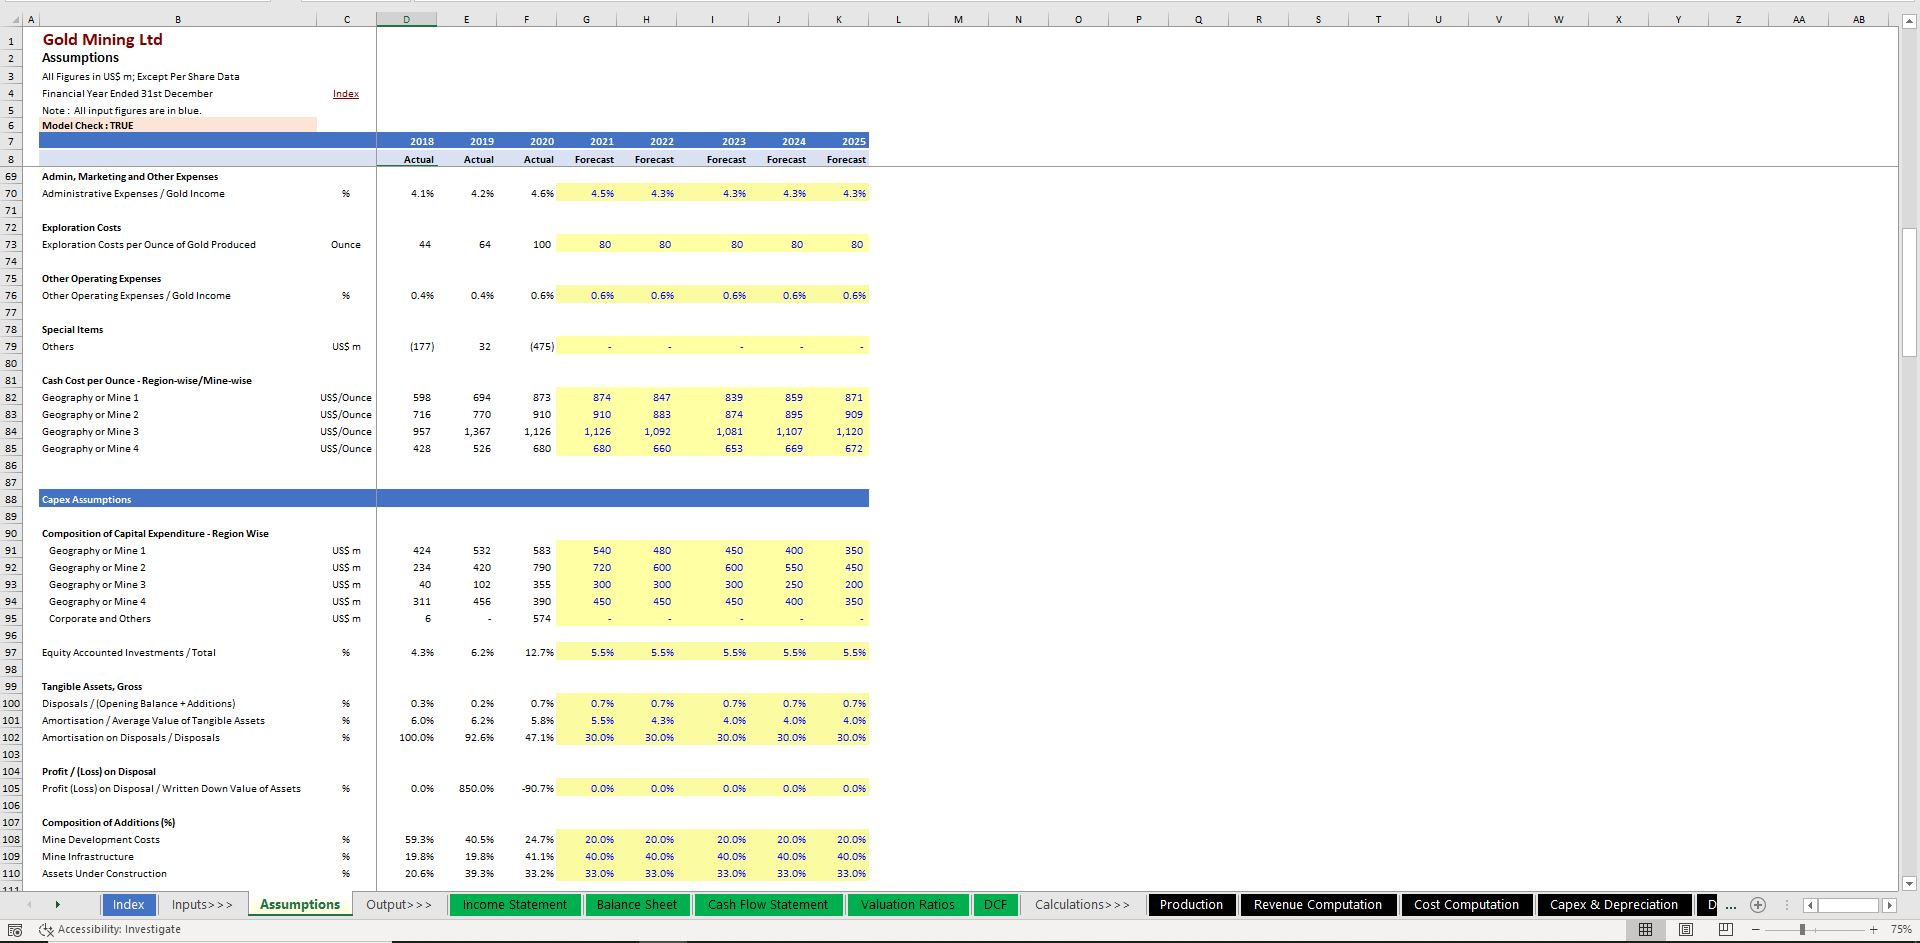 Gold Mining Company - Discounted Cash Flow DCF Valuation Model Template